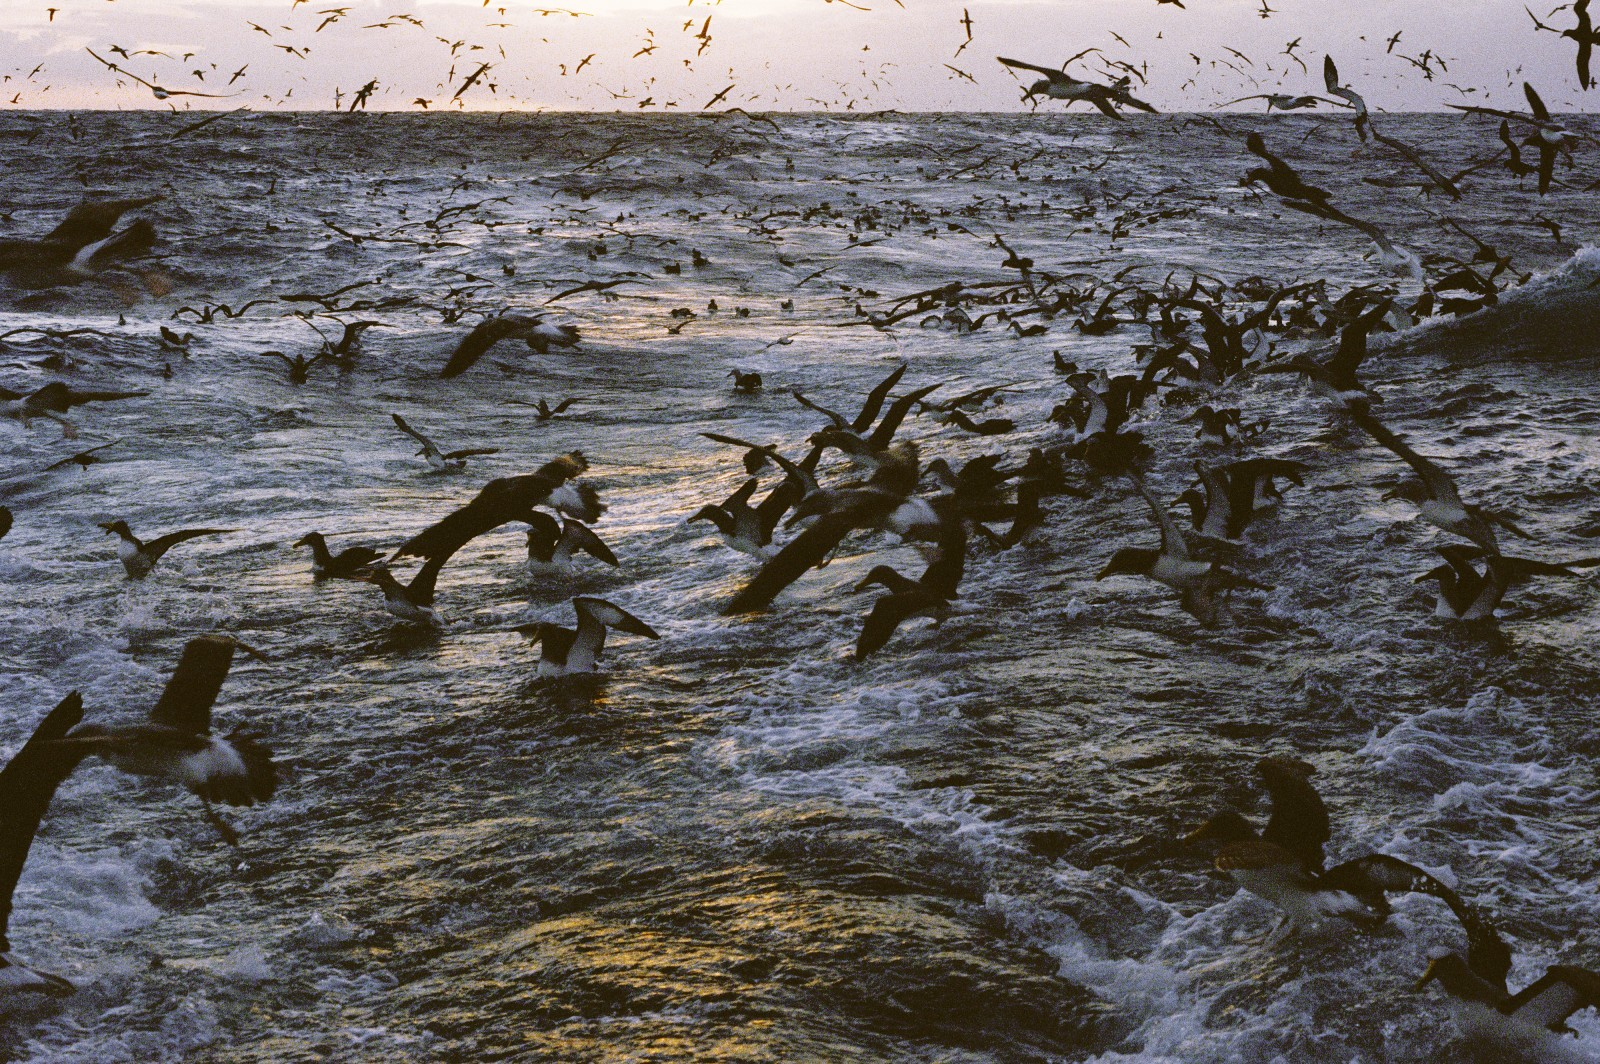 Great flocks of oceanic birds, including albatrosses, mollymawks, giant petrels, follow fishing vessels, having learned that easy meals may be had around them. These days, with all fish scraps being turned into fish meal, the only pickings to be had are fish which are forced through the mesh of the net.